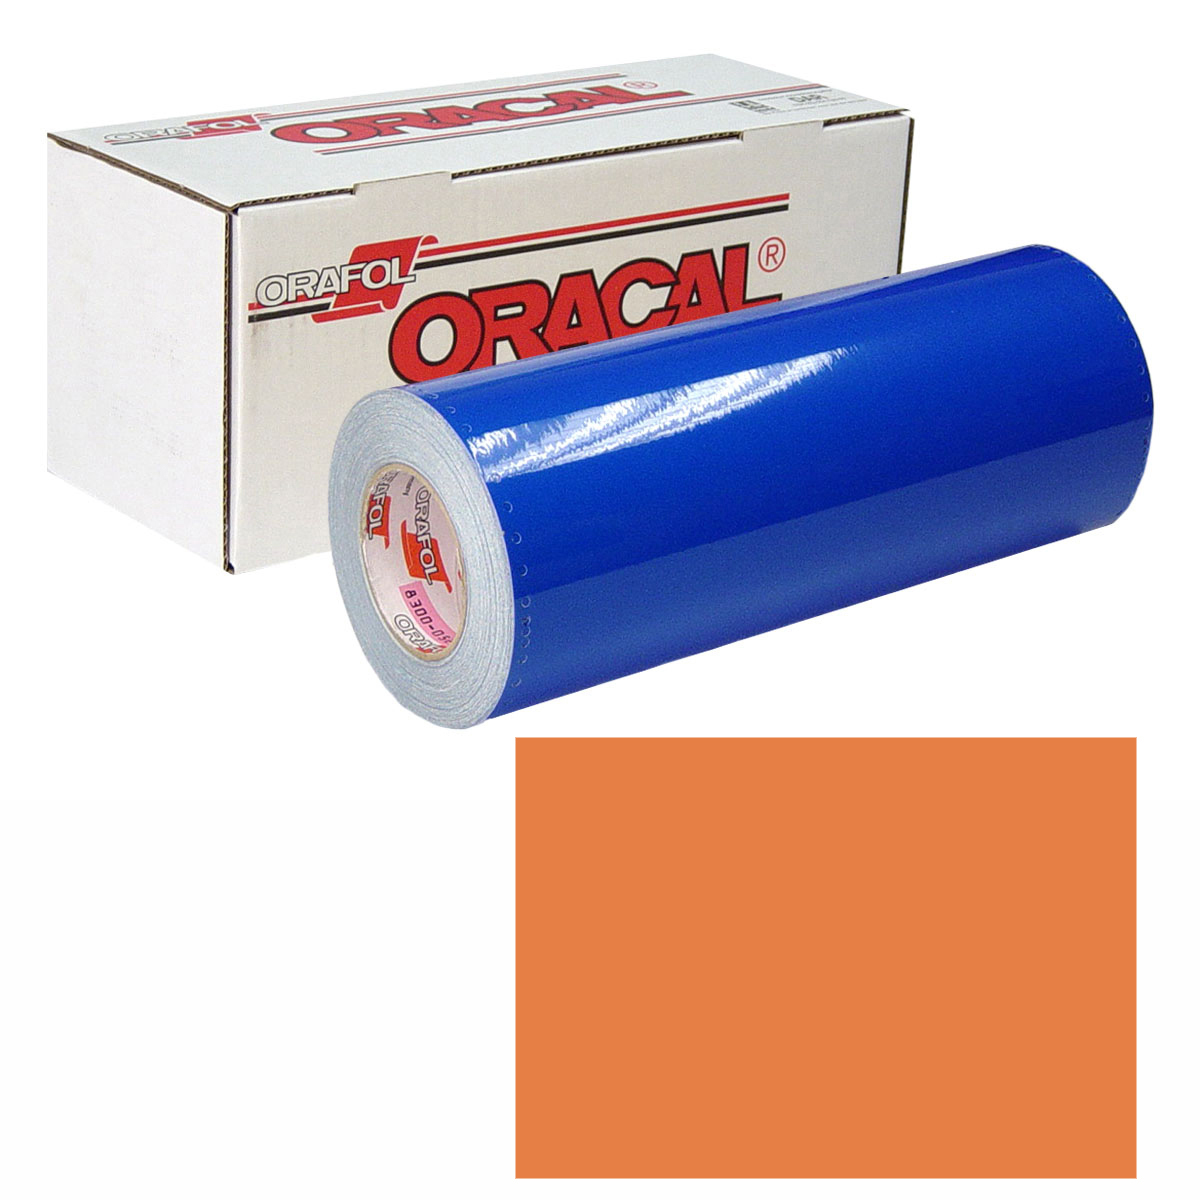 ORACAL 631 Unp 24in X 50yd 391 Persimmon